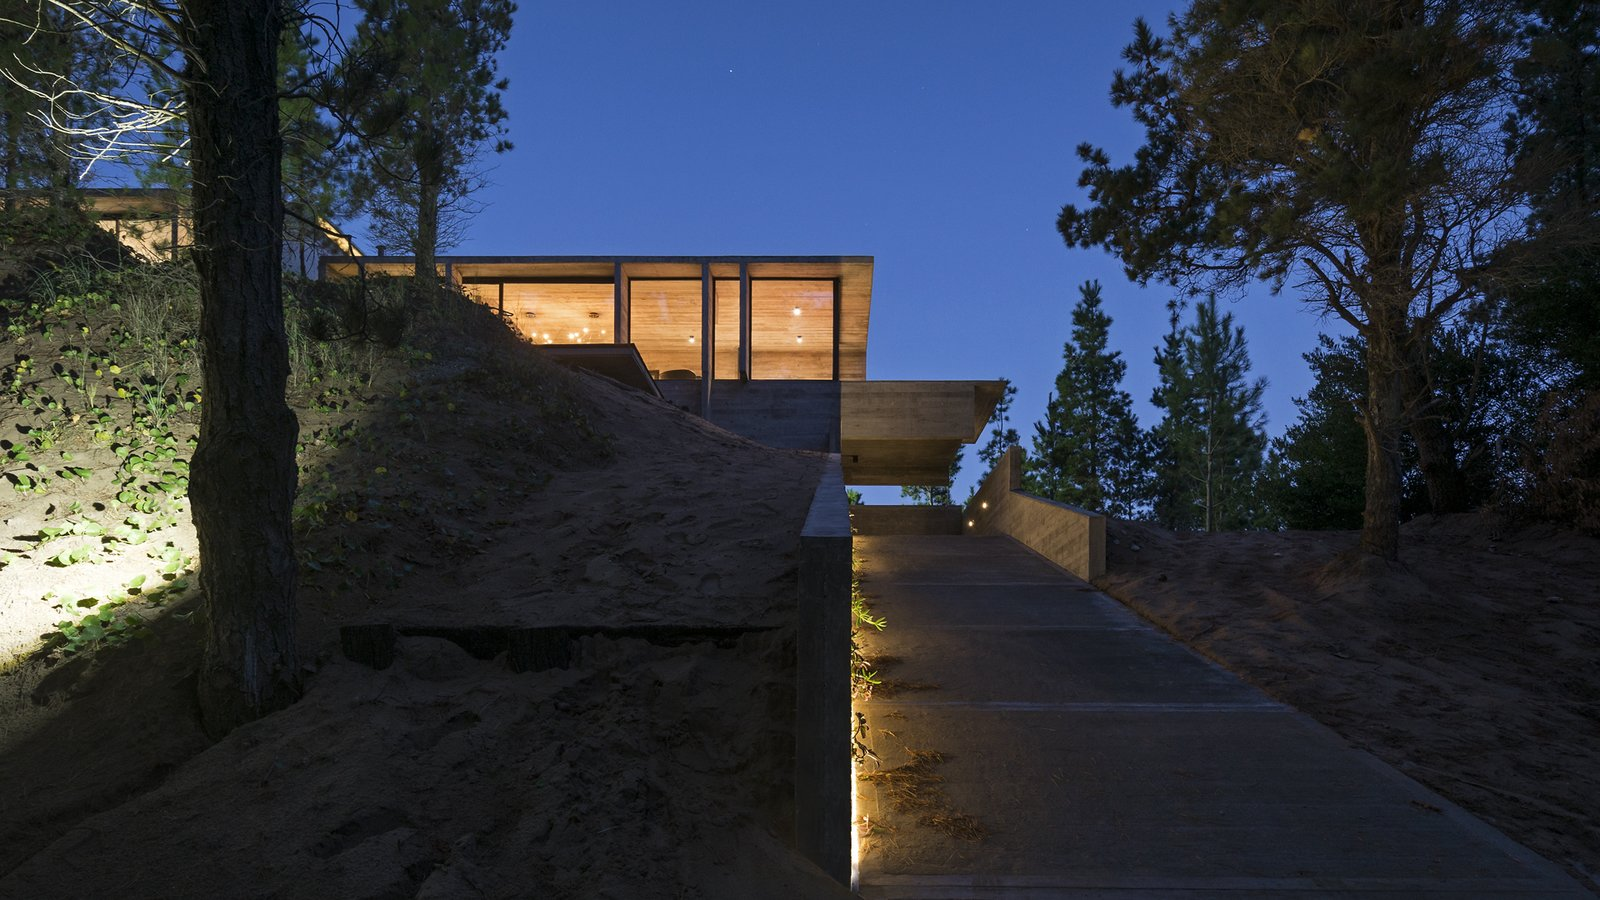 Exterior, Beach House Building Type, House Building Type, Concrete Siding Material, Glass Siding Material, and Metal Siding Material Wein House - Besonías Almeida arquitectos  Wein House by Besonías Almeida arquitectos